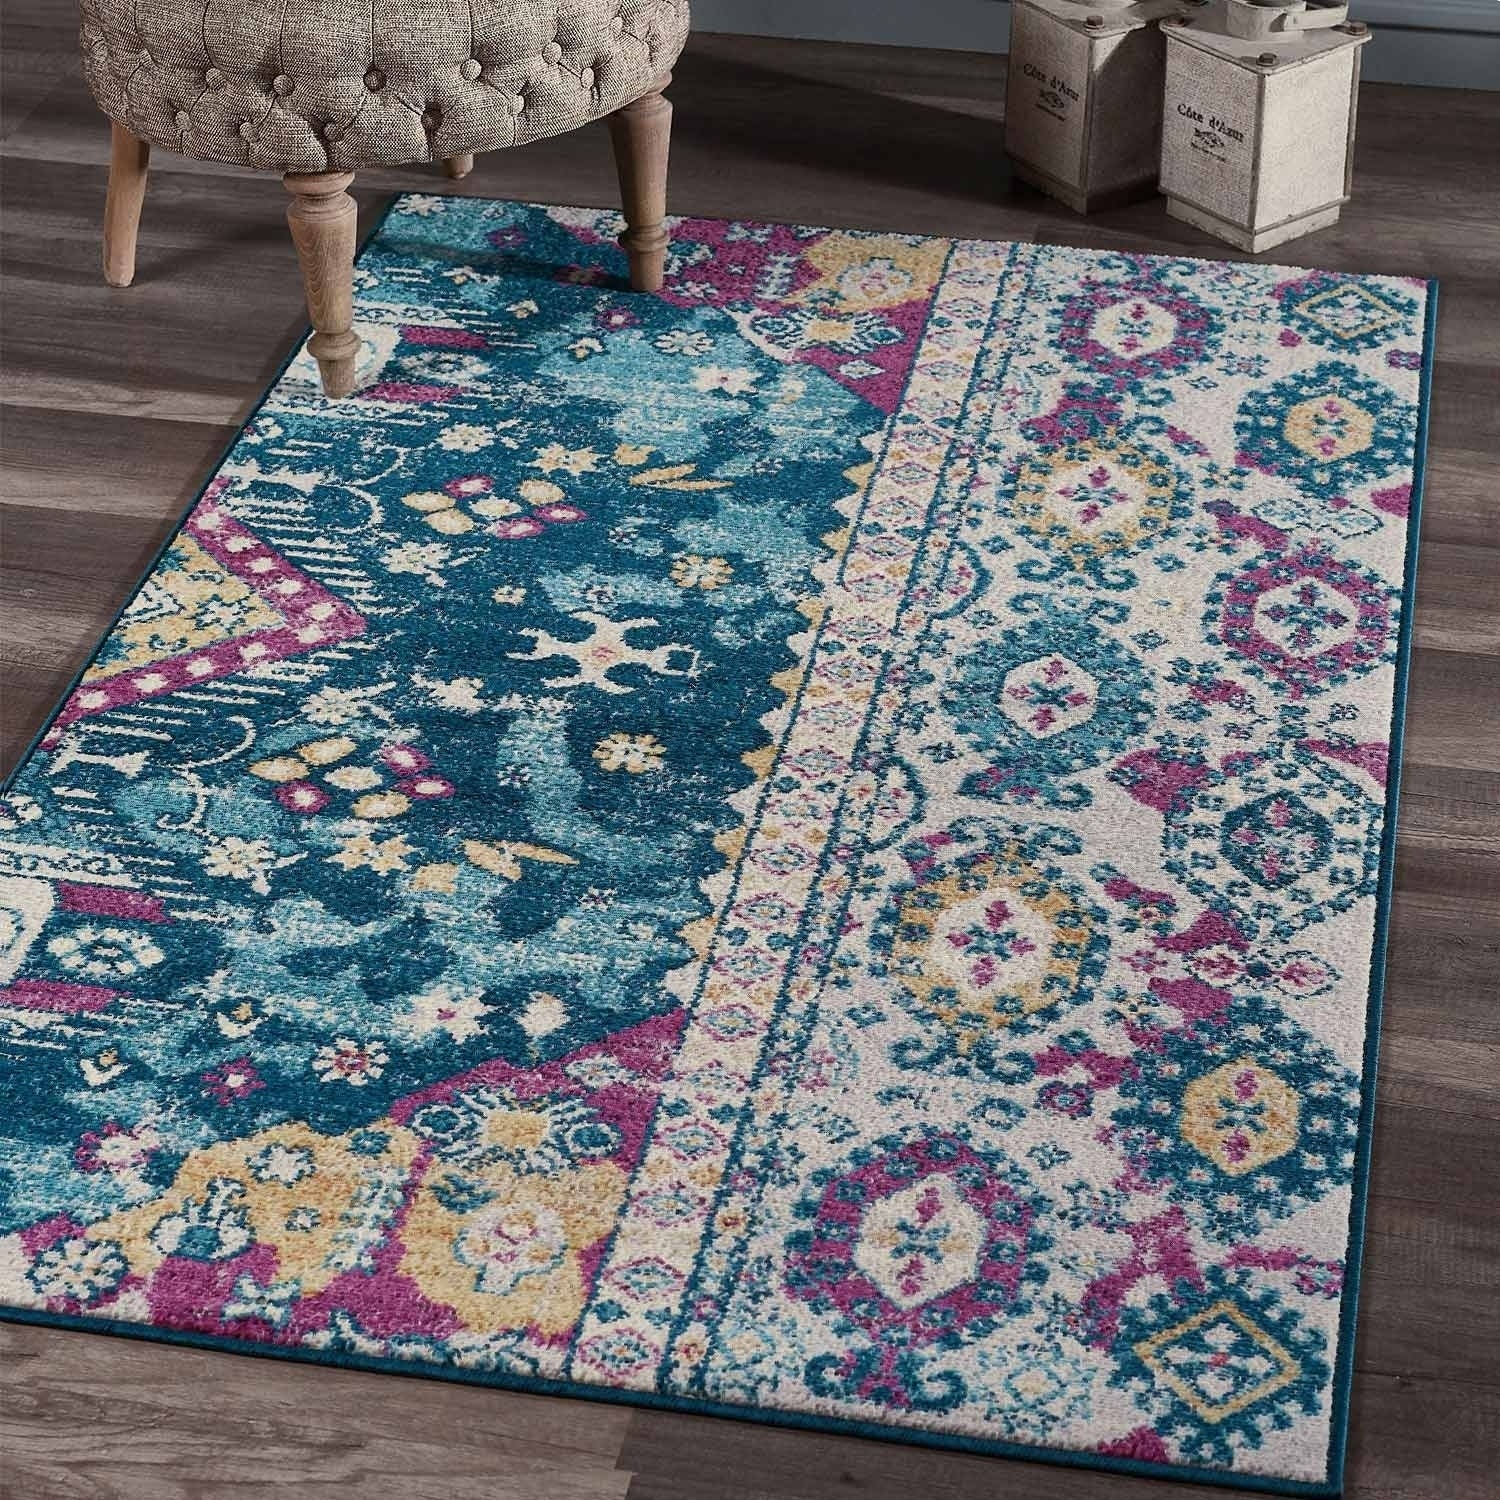 X 6 With Tufting Carpets Rugs